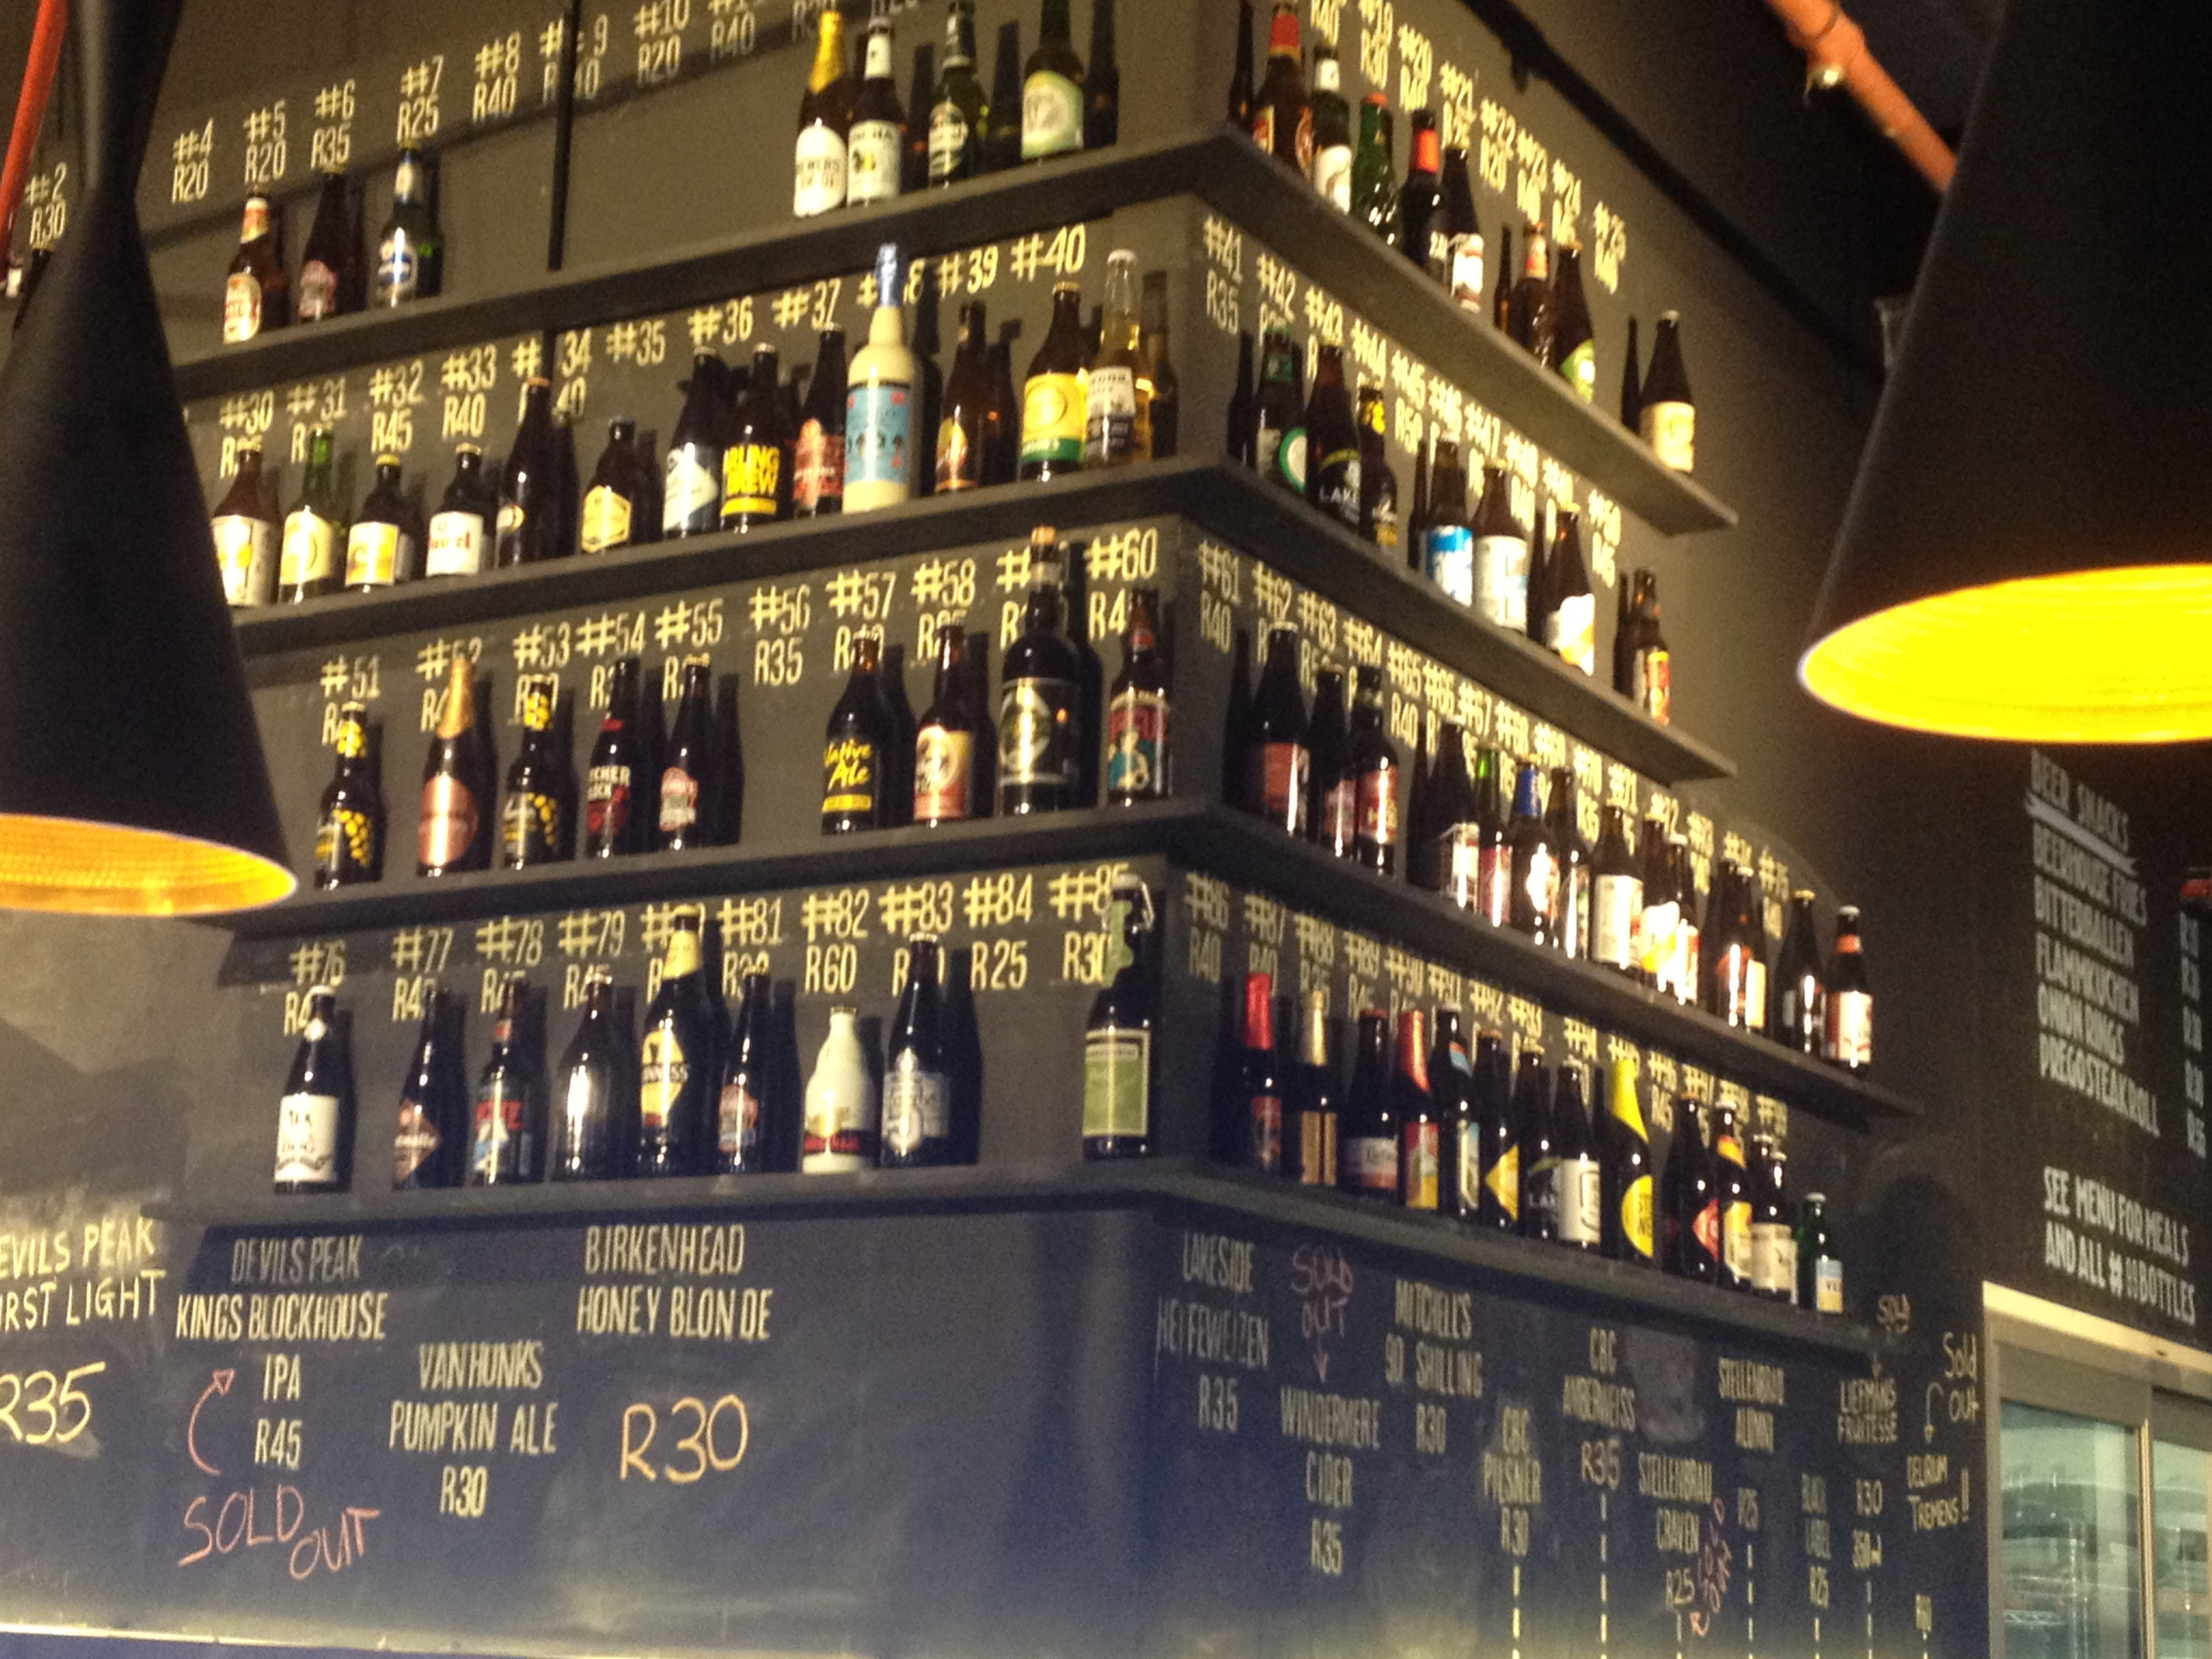 Beerhouse-Bottled-Beers-Whale-Cottage-Po